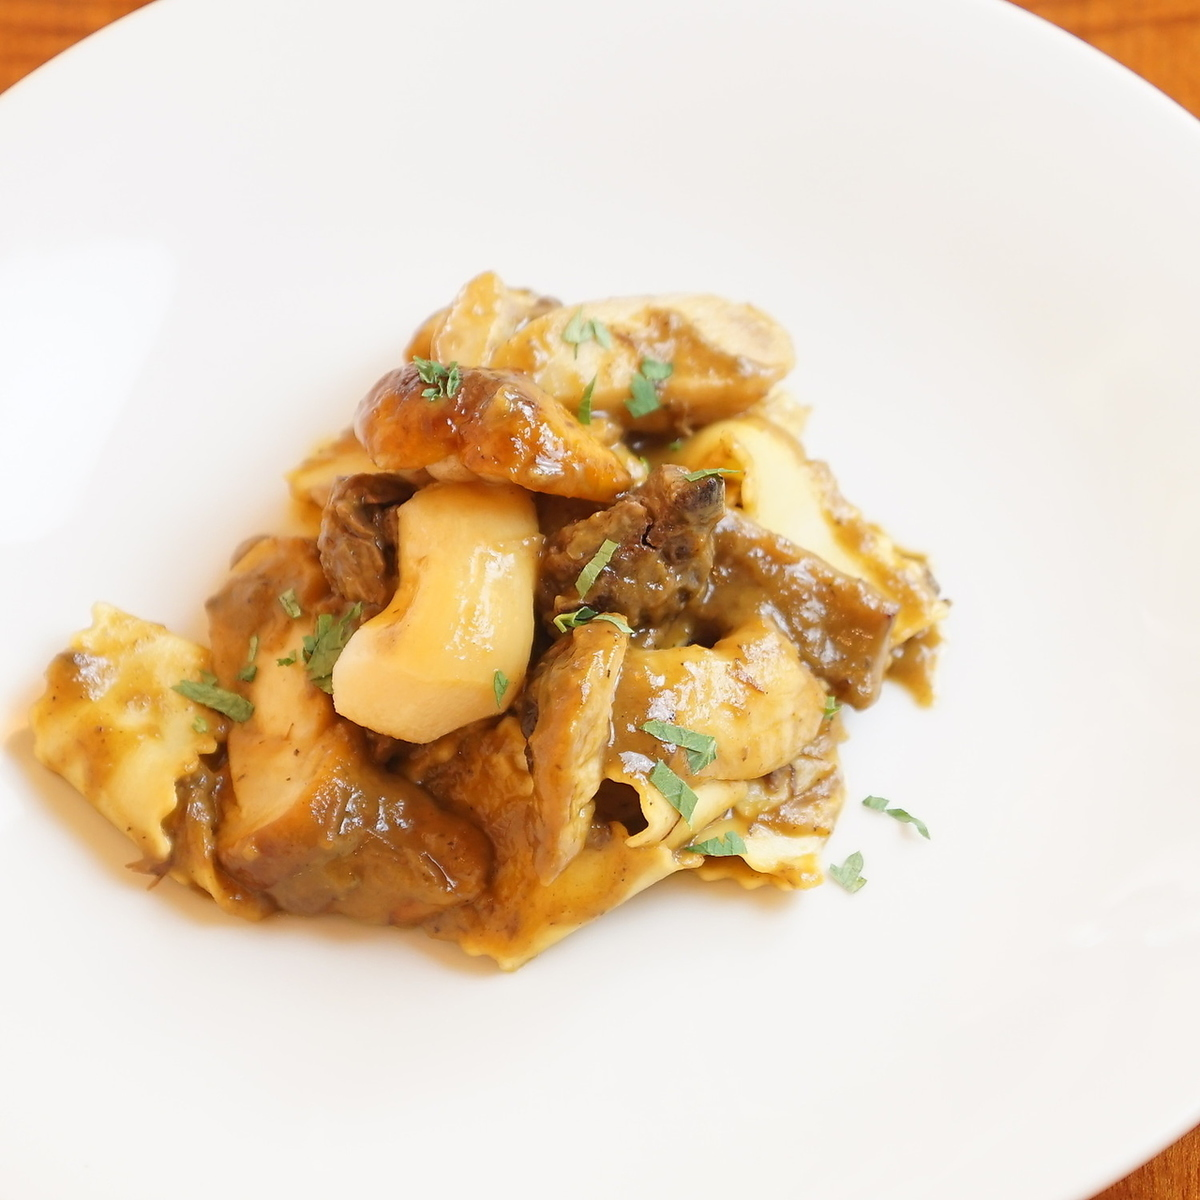 Japanese beef shank ragout and porcini mushroom sauce Pappardelle made from Mie prefecture laying eggs